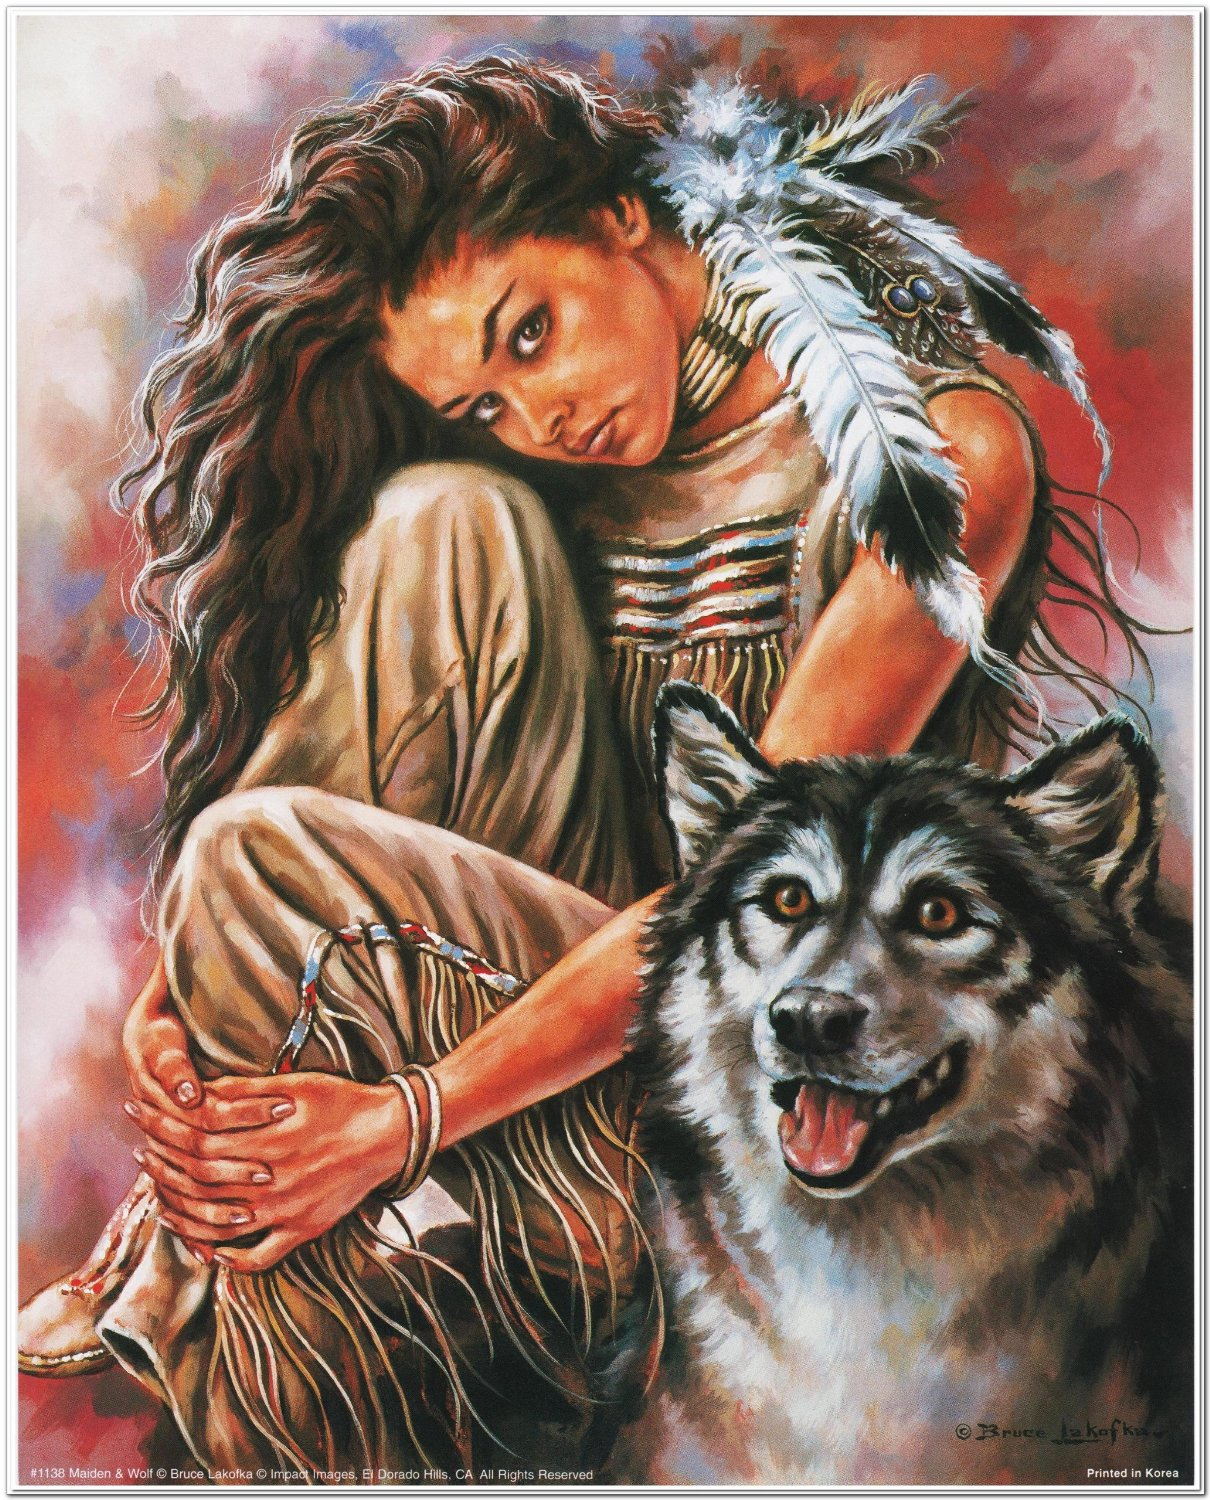 Buy Indian Maiden and Wolf Native American Wall Decor Art Print